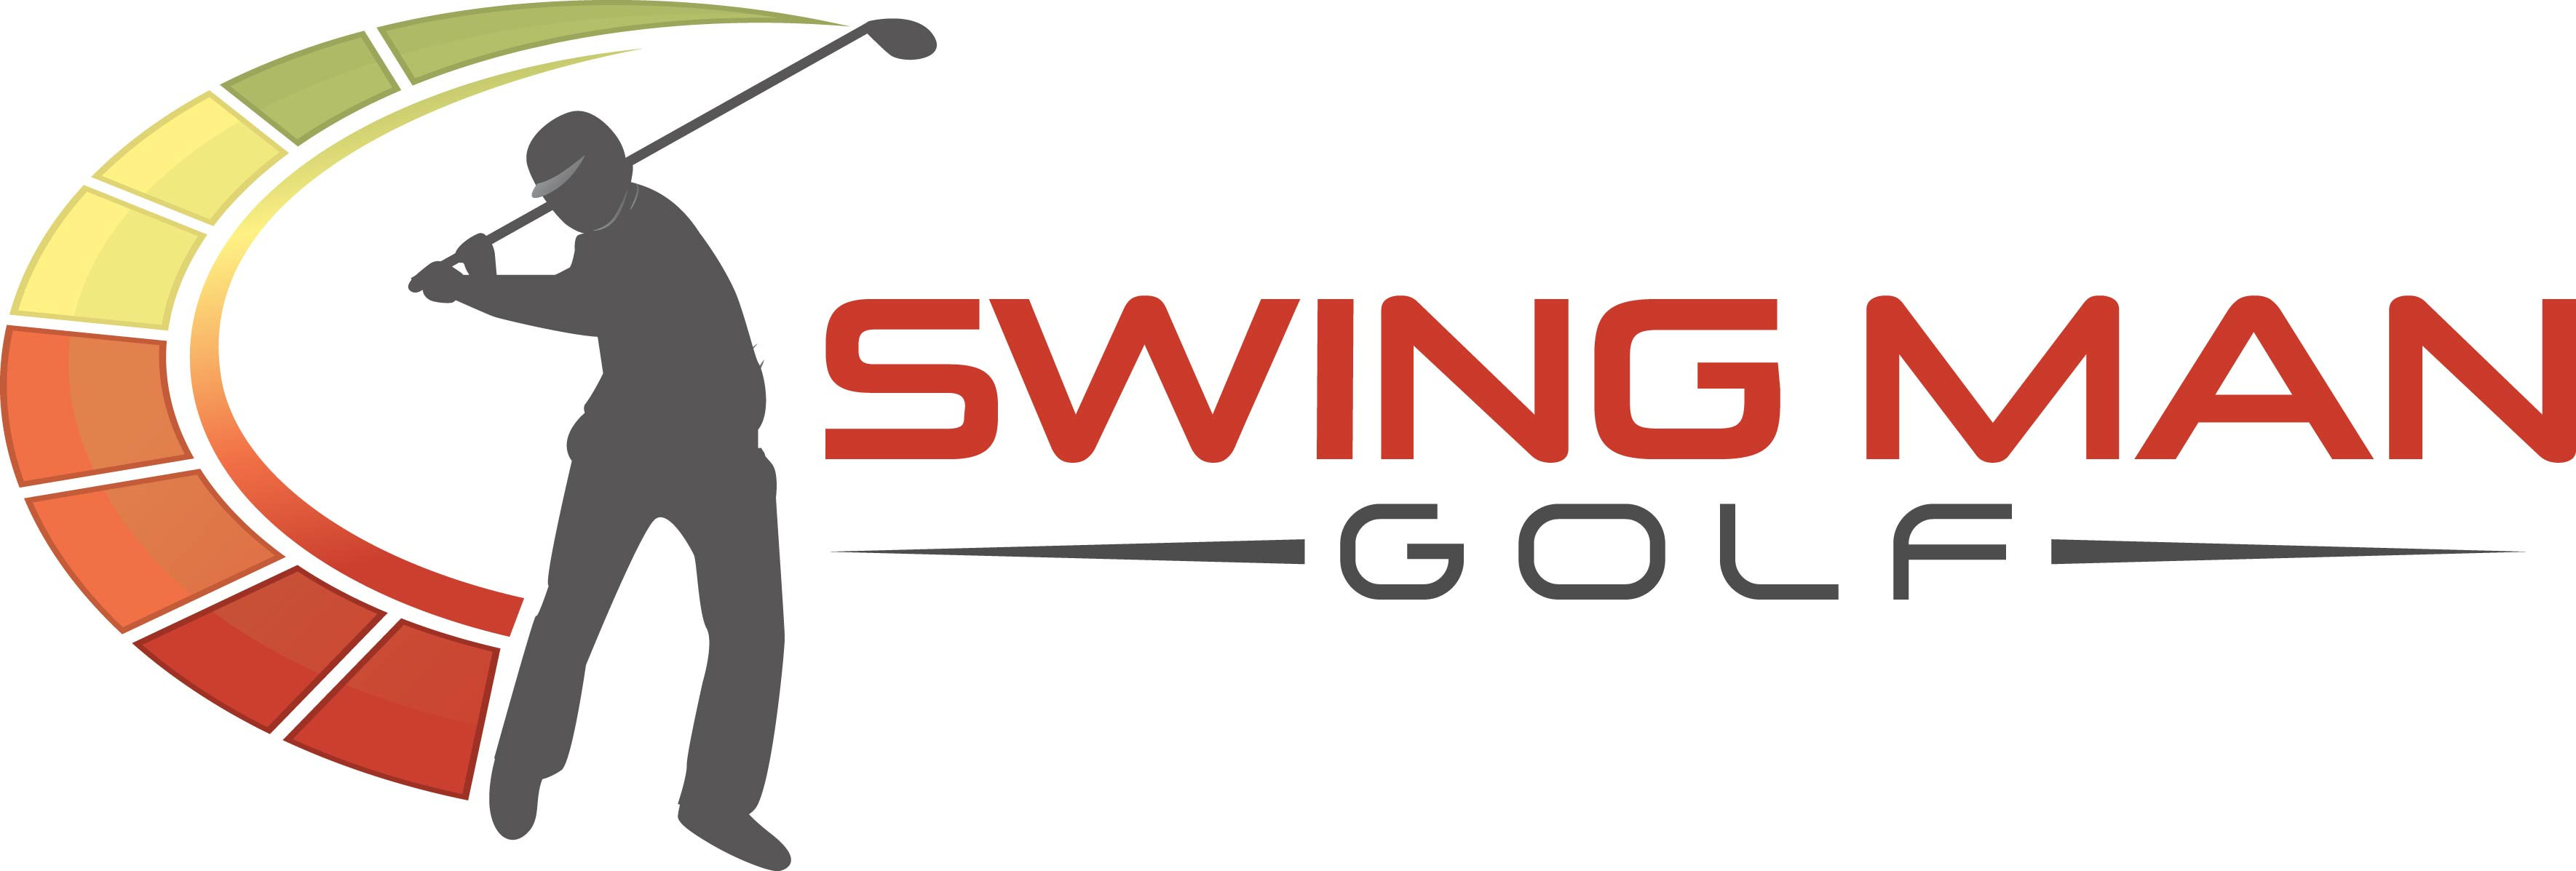 Swing Man Golf